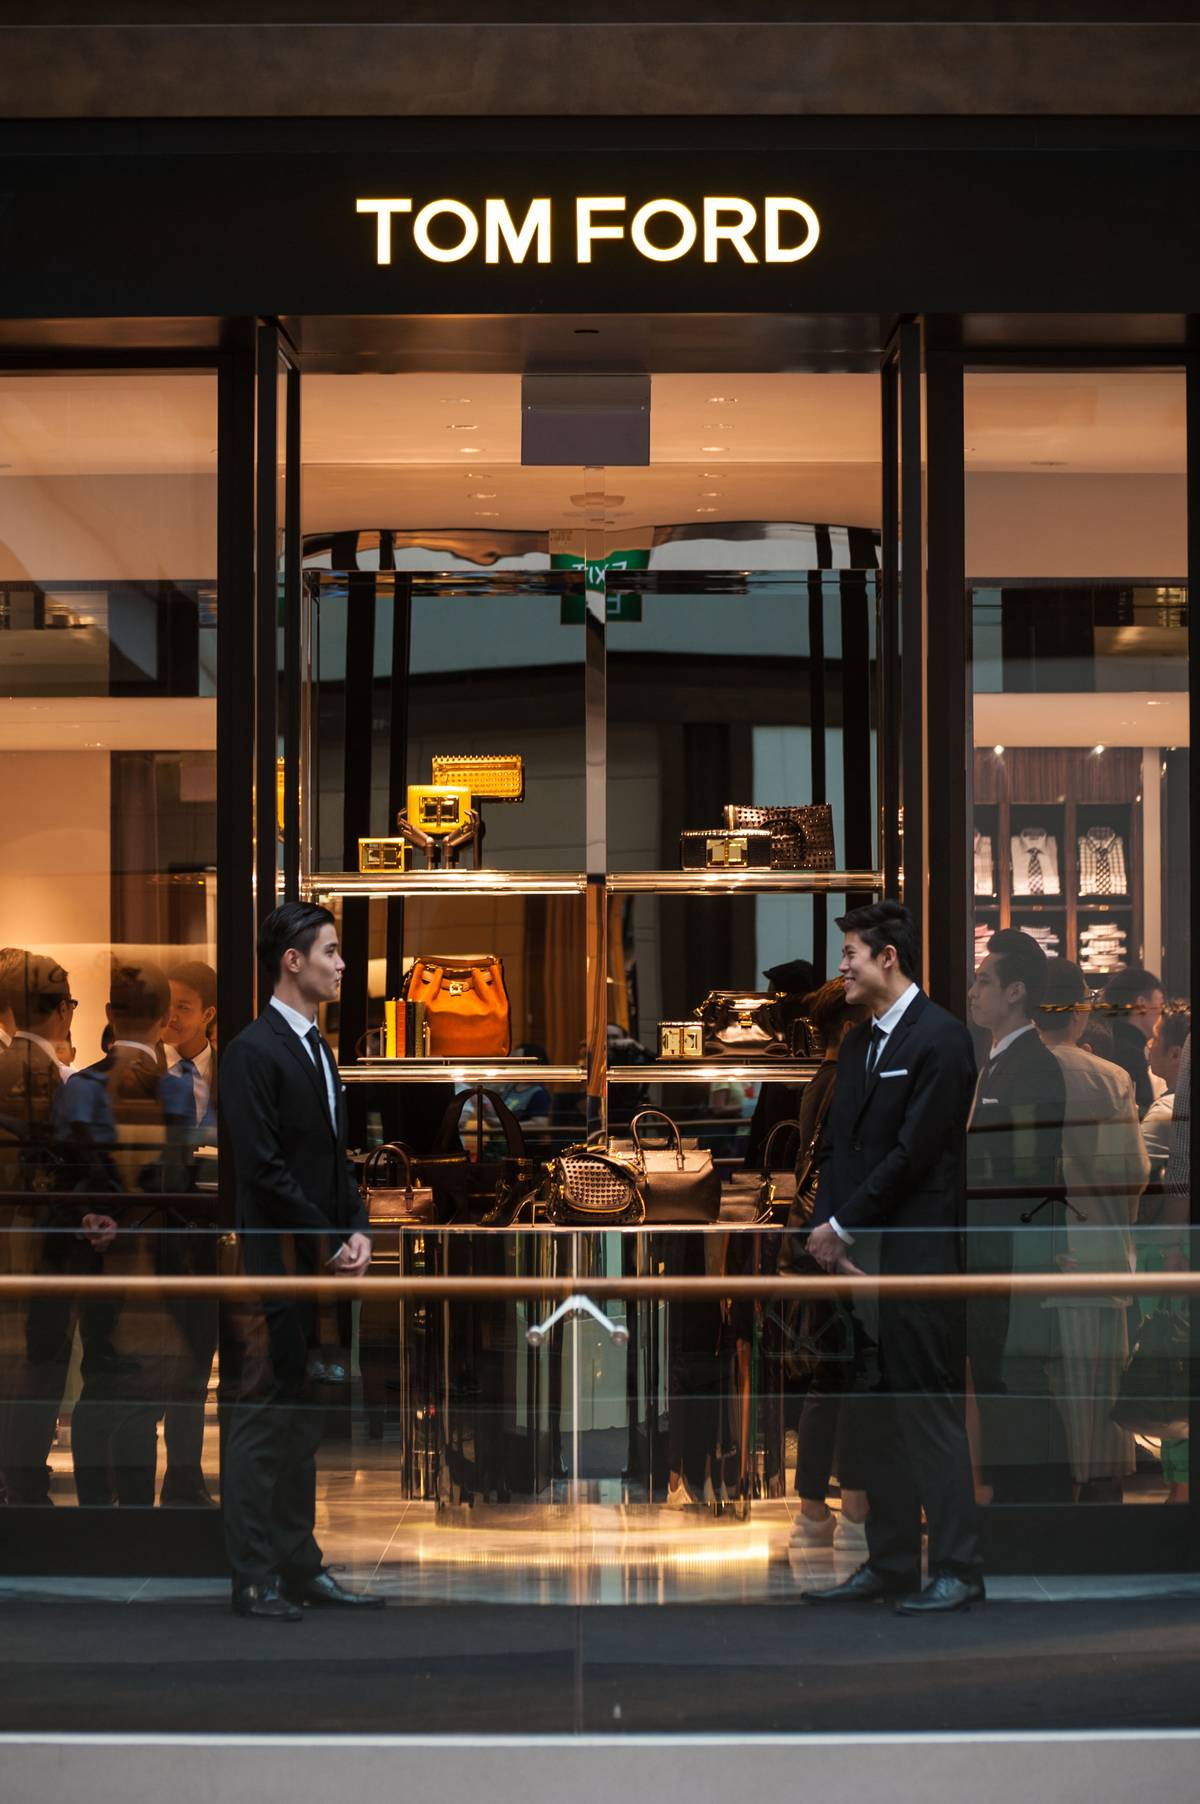 Tom Ford Opens 1st Store In South East Asia At Marina Bay